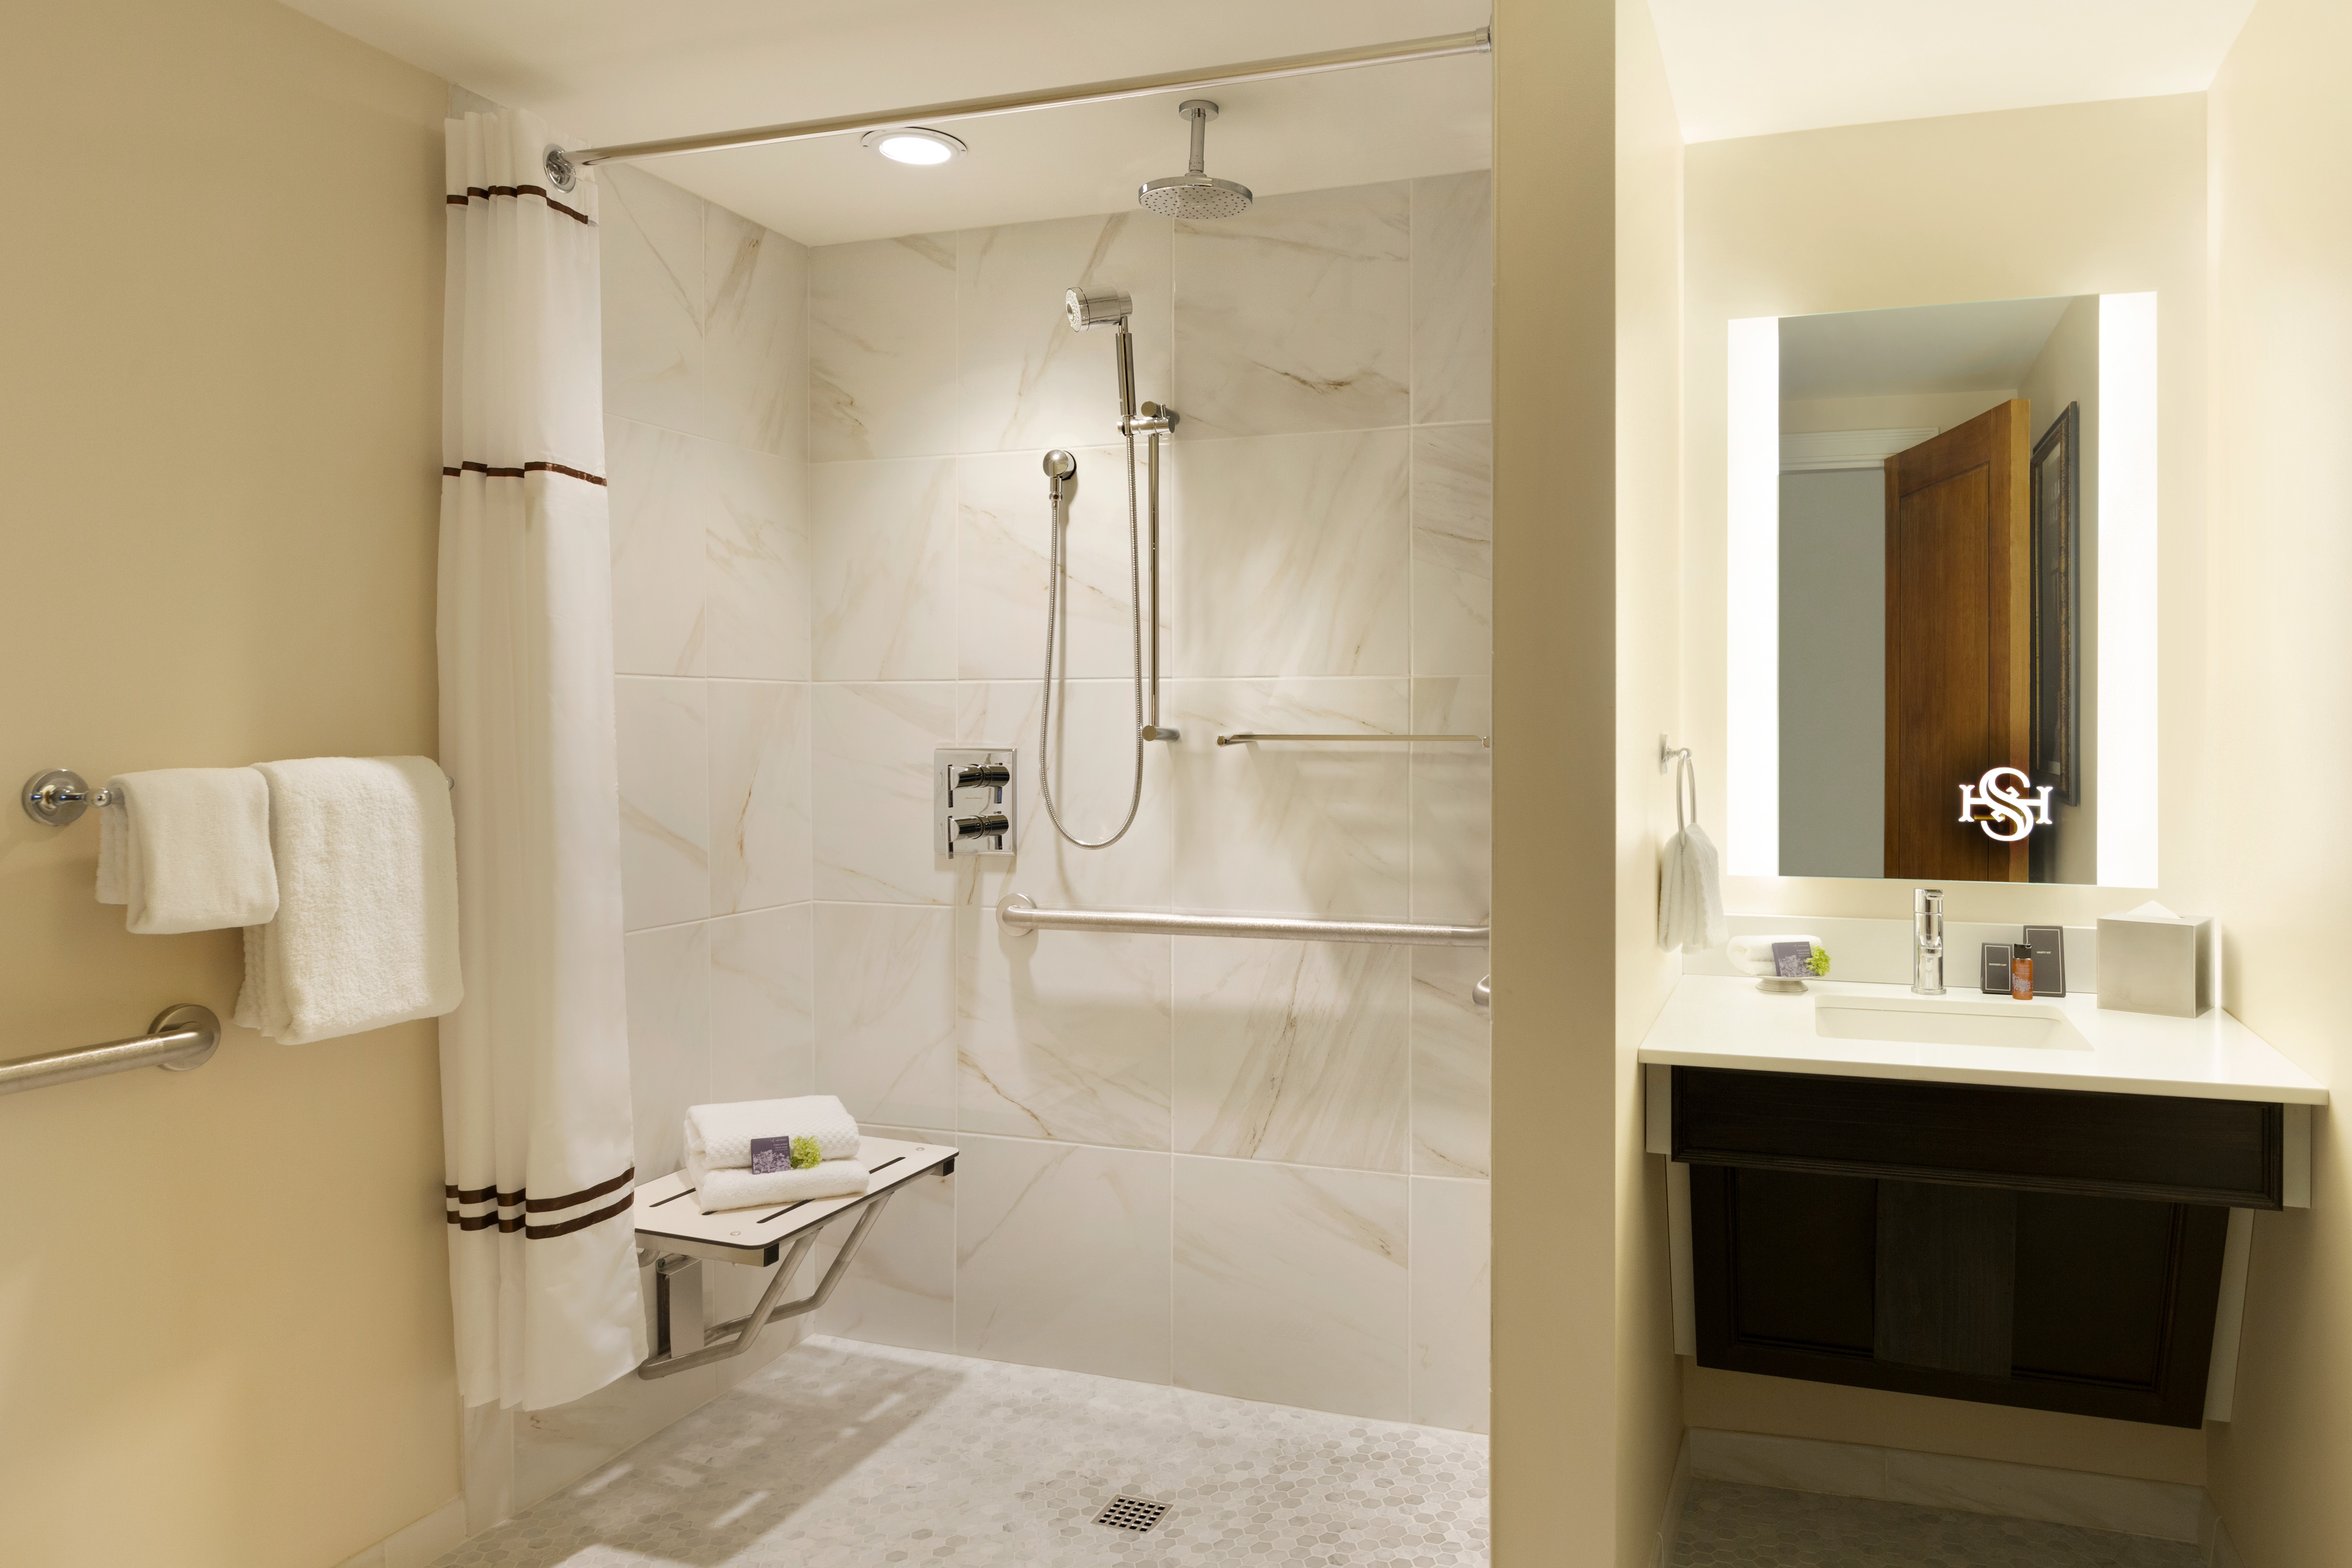 Hotel Saranac Renovated Bathroom Design